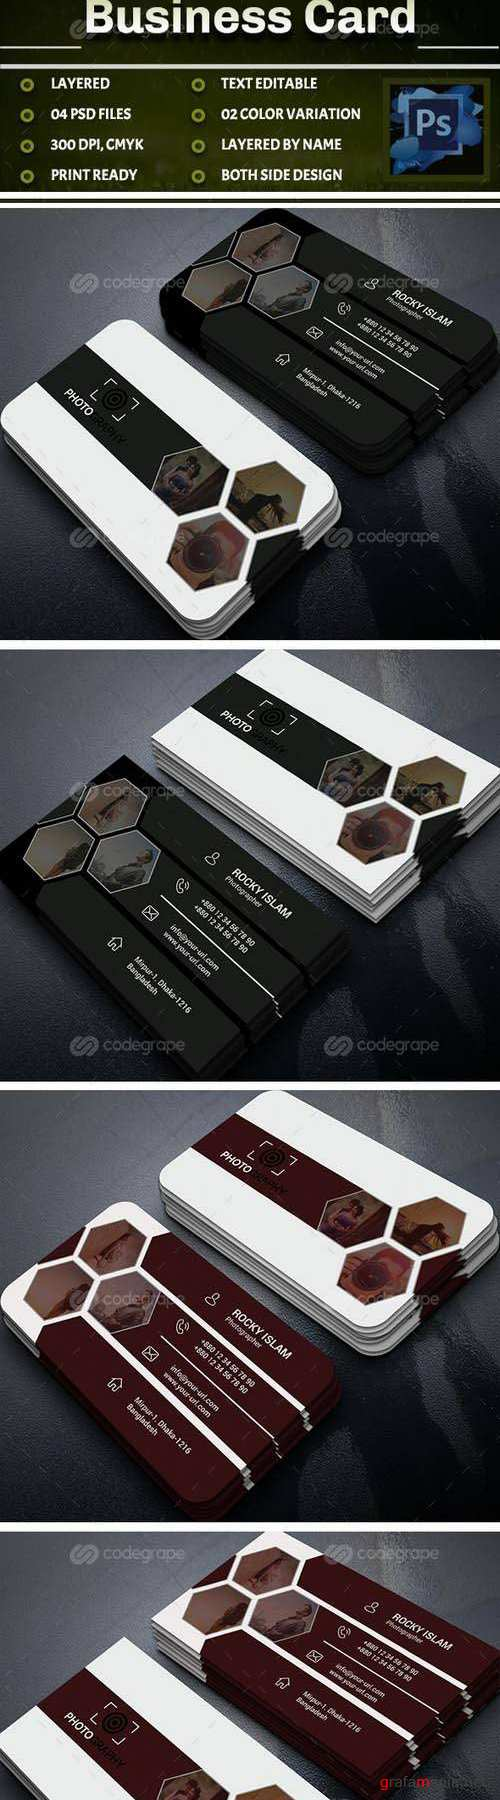 Photography Business Card 11233